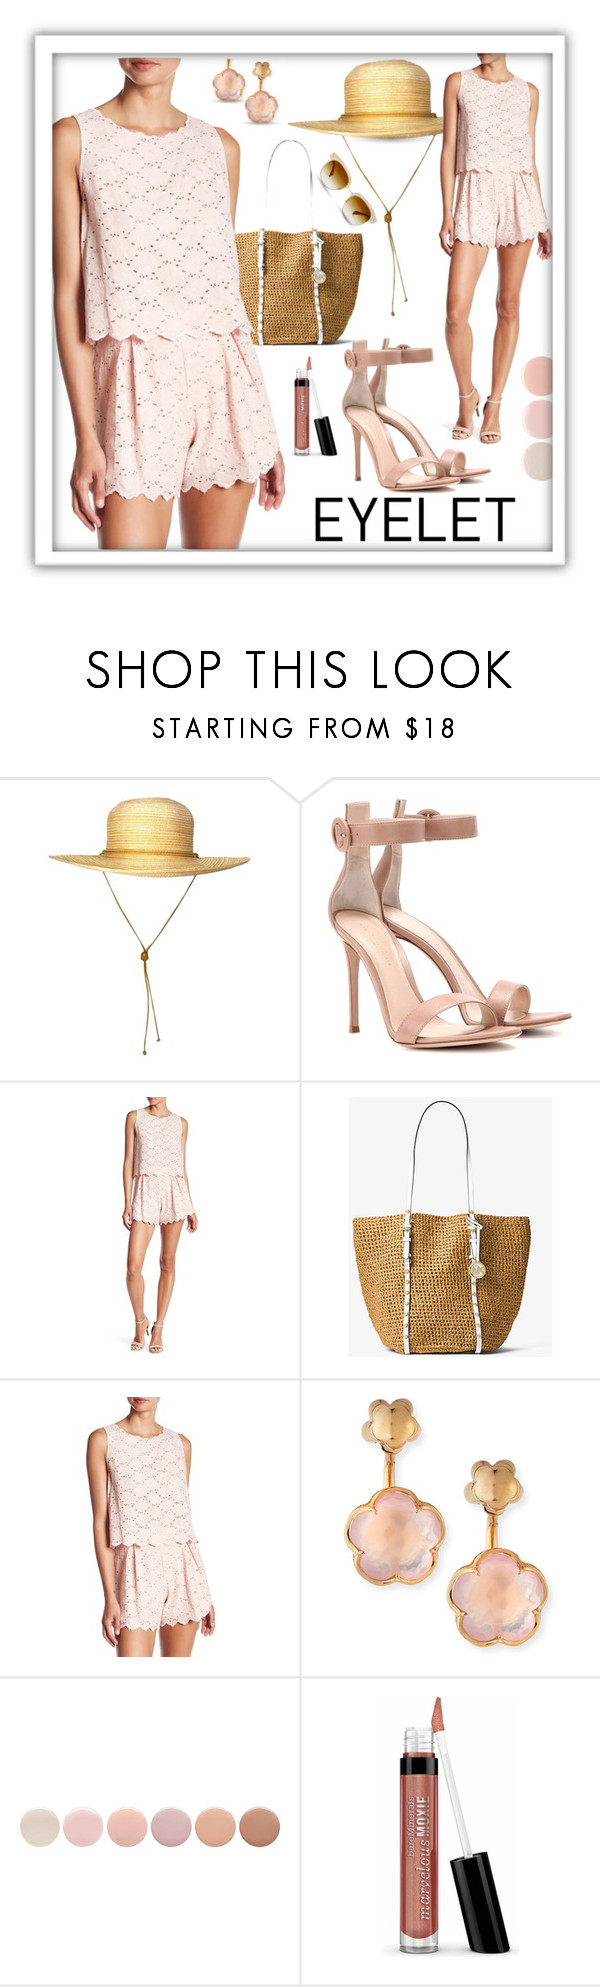 """""""Peek-a-Boo"""" by queenofsienna ❤ liked on Polyvore featuring Gianvito Rossi, Do+Be, MICHAEL Michael Kors, Pasquale Bruni, Deborah Lippmann, Bare Escentuals and Oliver Peoples"""